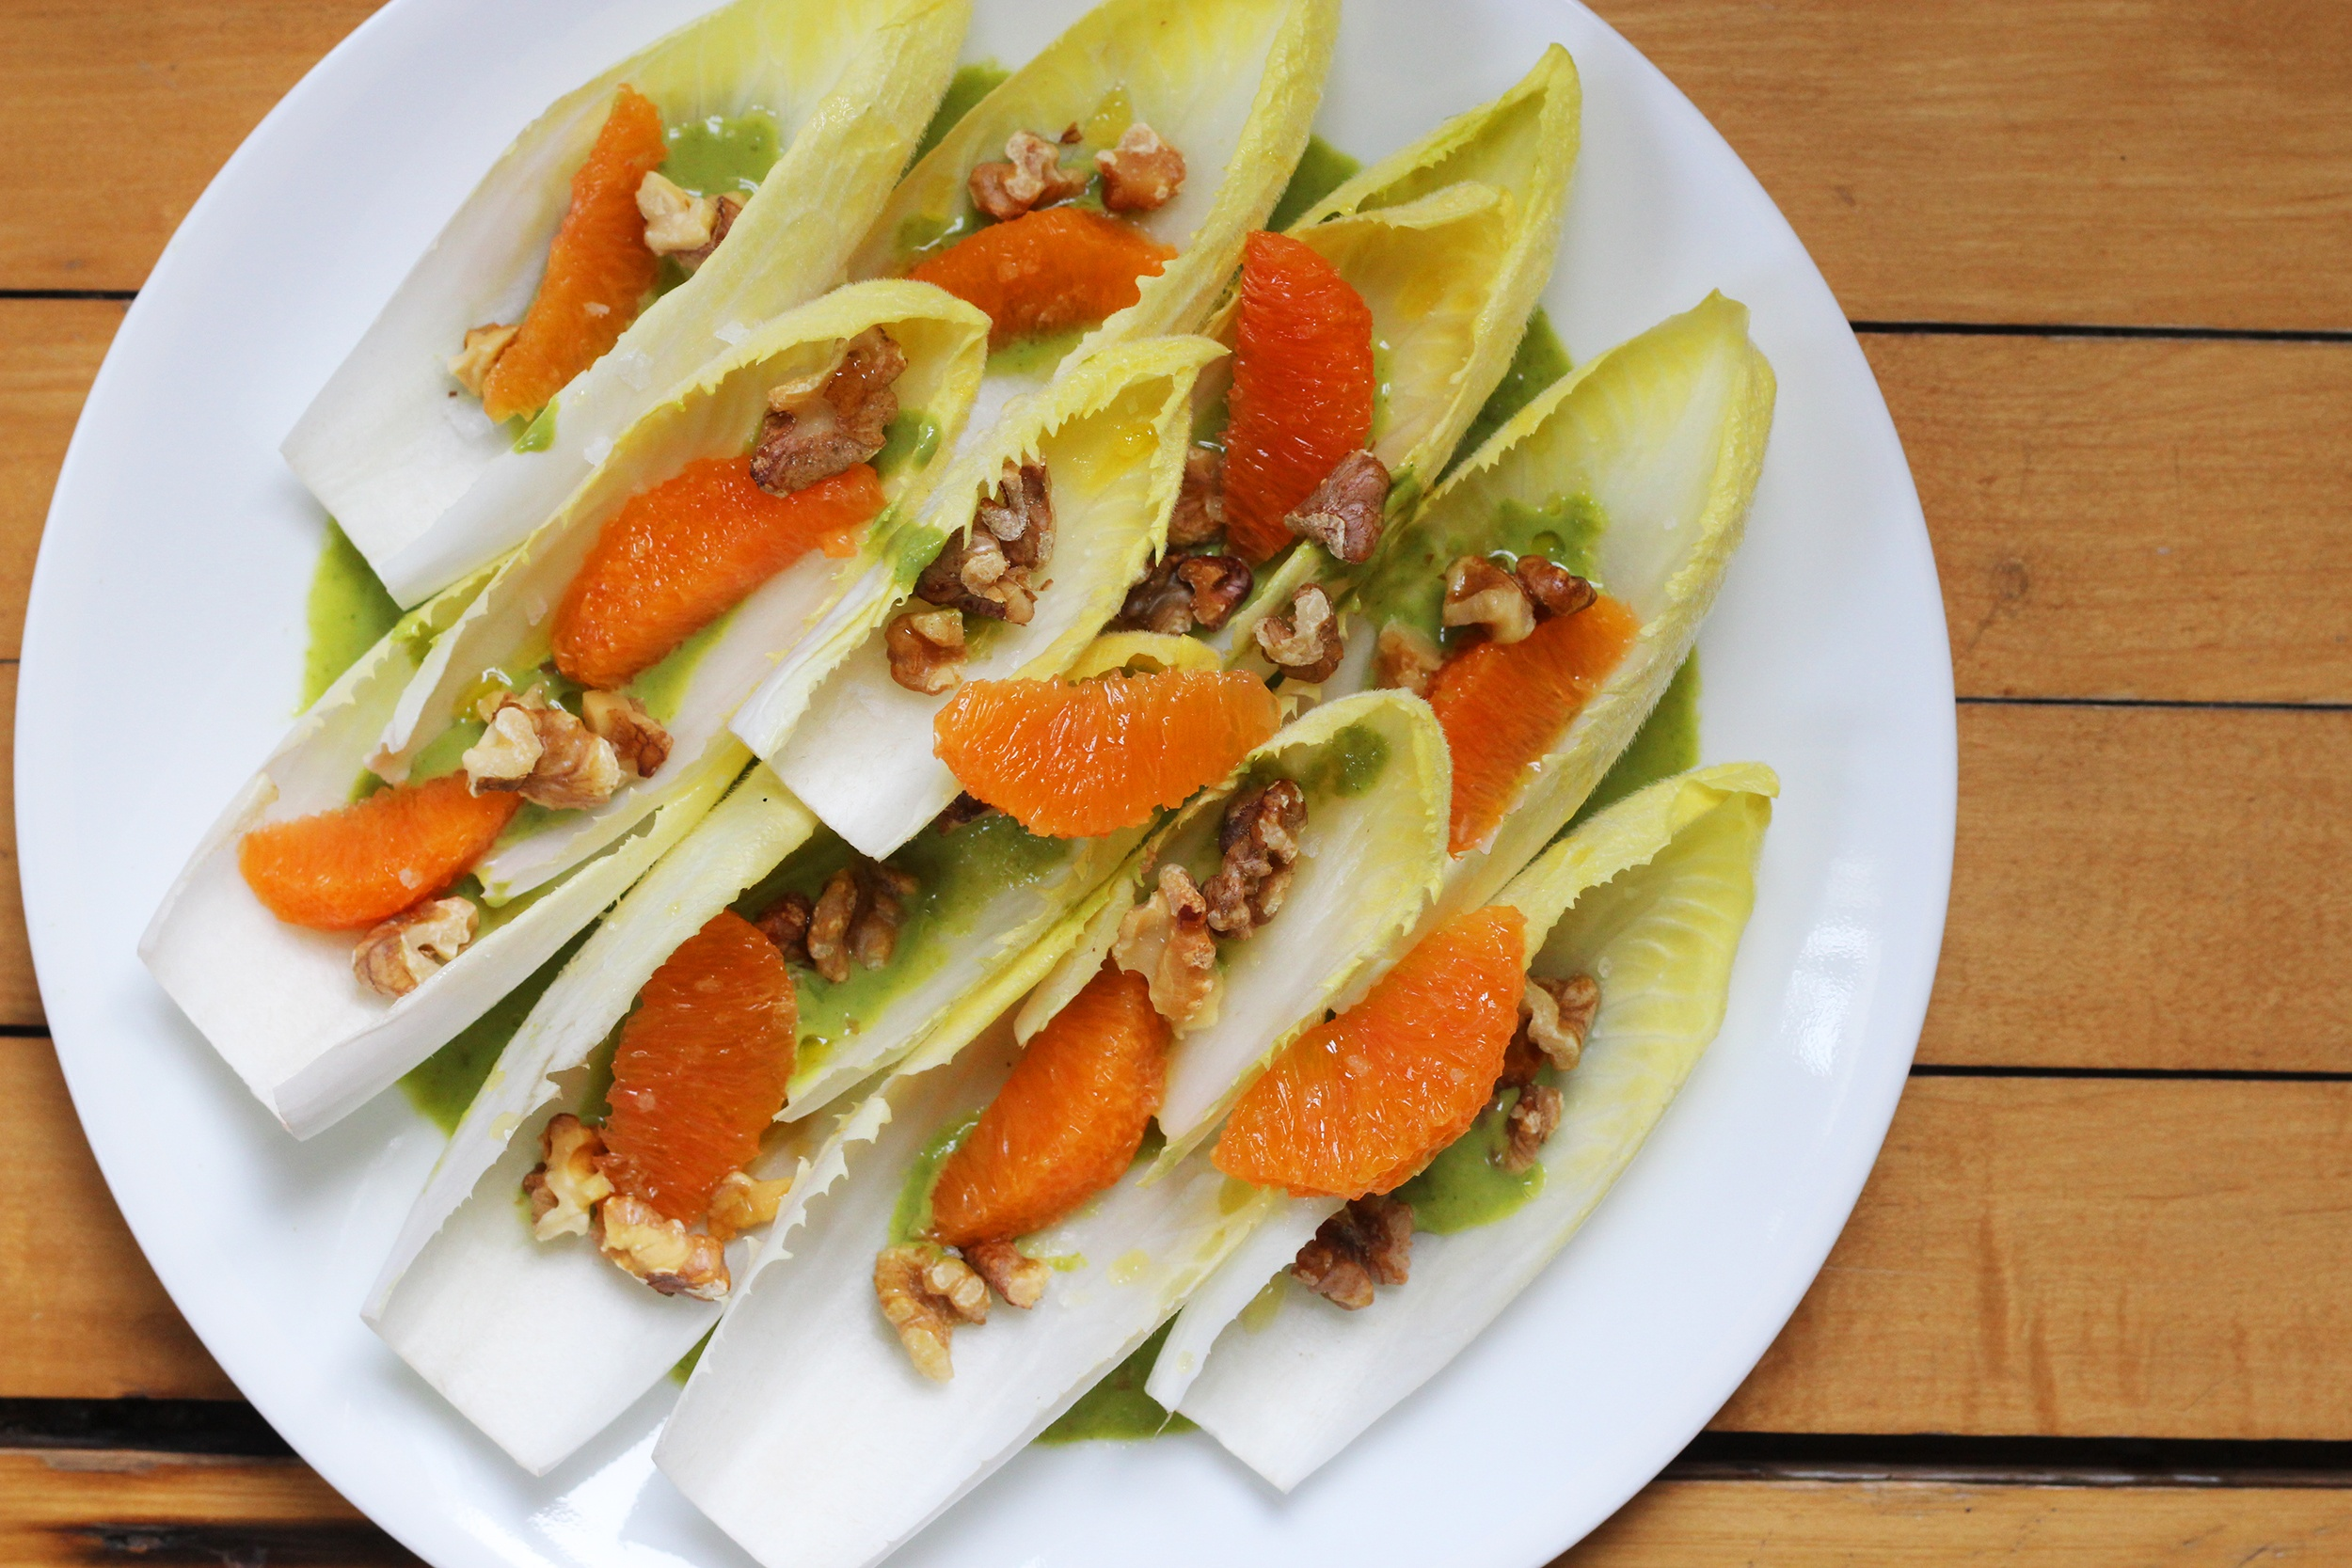 Endive leaves topped with cara cara orange segments and toasted walnuts